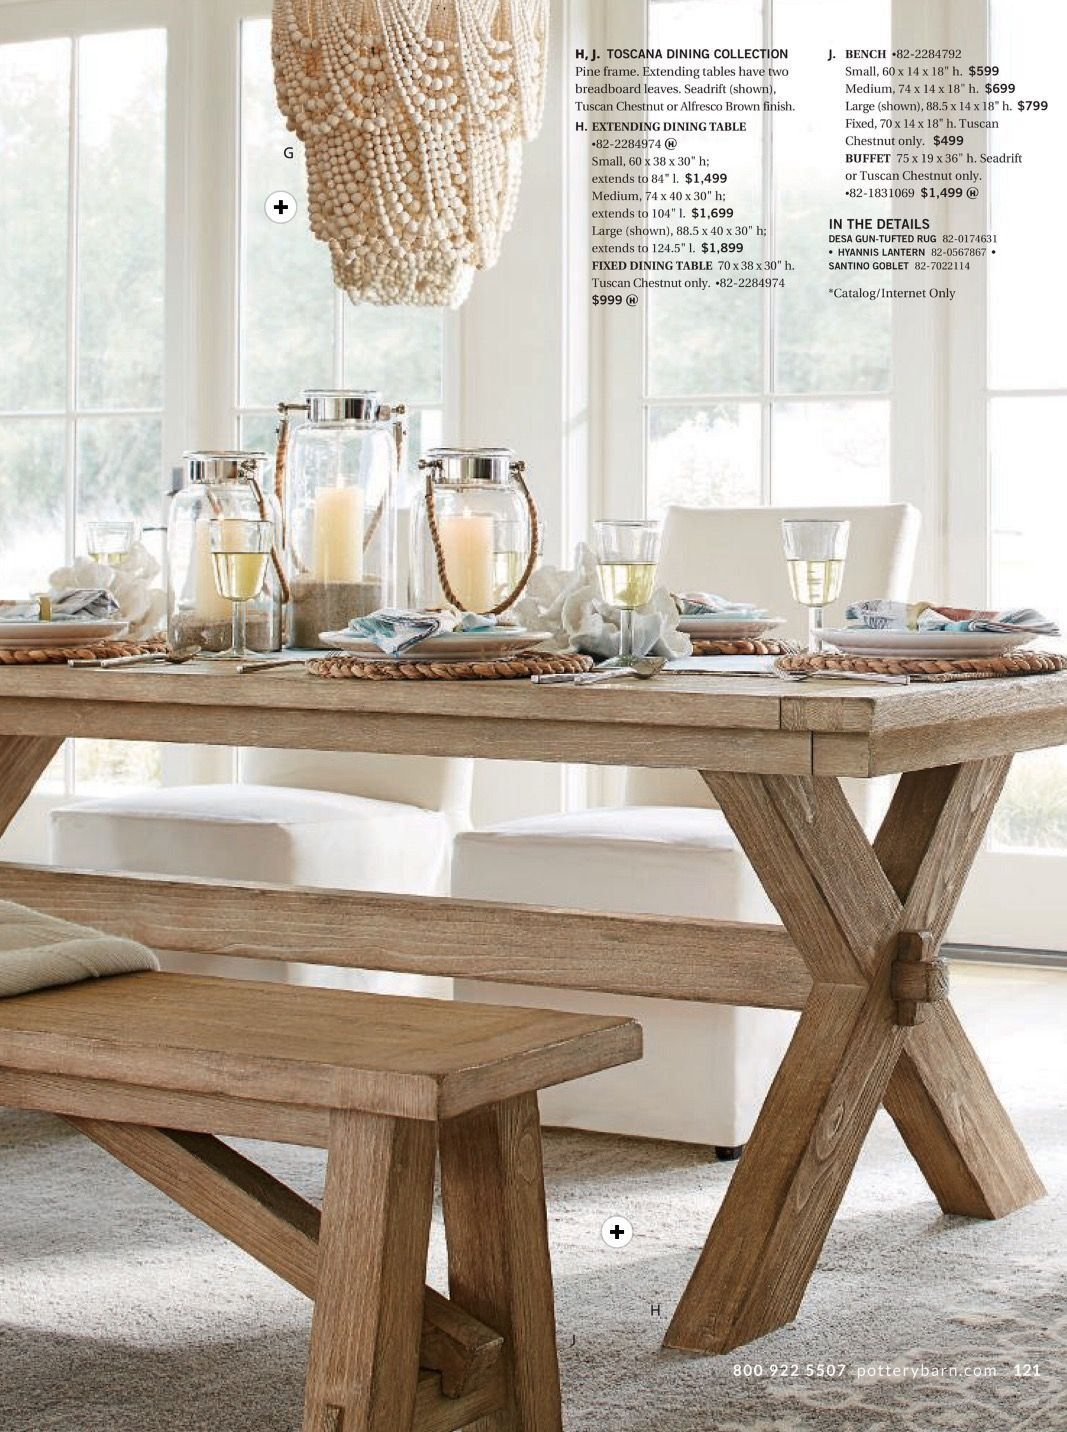 Strange Toscano Dining Table And Bench In Seadrift Amelia Wood Bead Alphanode Cool Chair Designs And Ideas Alphanodeonline